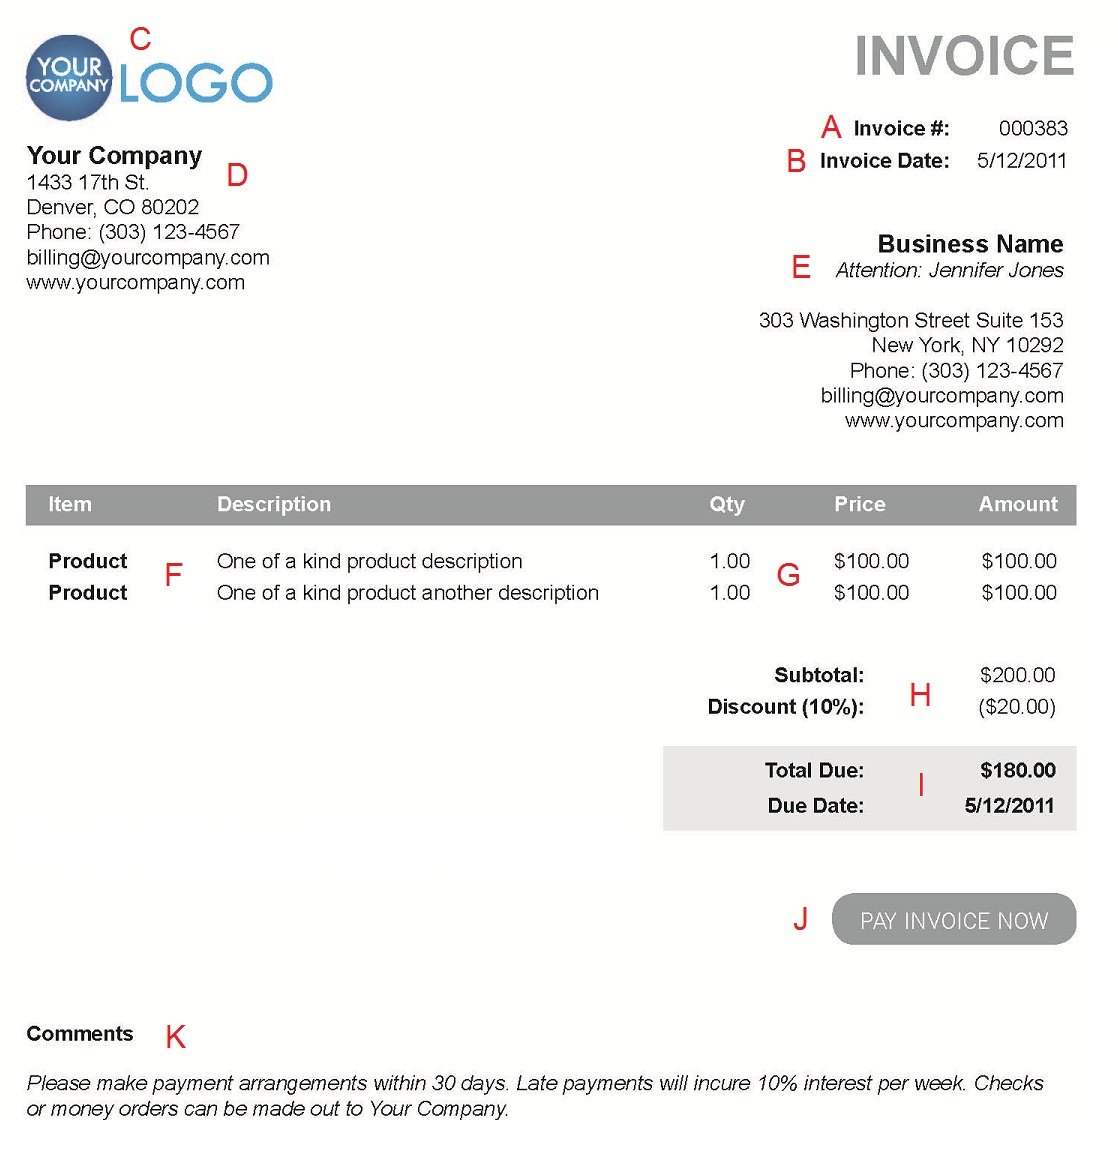 Weirdmailus  Scenic The  Different Sections Of An Electronic Payment Invoice With Gorgeous A  With Nice Quickbooks Email Invoices Also Nch Express Invoice In Addition Consultant Invoice And Toyota Invoice Price As Well As Honda Accord Invoice Price Additionally Invoice Template Free Download From Paysimplecom With Weirdmailus  Gorgeous The  Different Sections Of An Electronic Payment Invoice With Nice A  And Scenic Quickbooks Email Invoices Also Nch Express Invoice In Addition Consultant Invoice From Paysimplecom